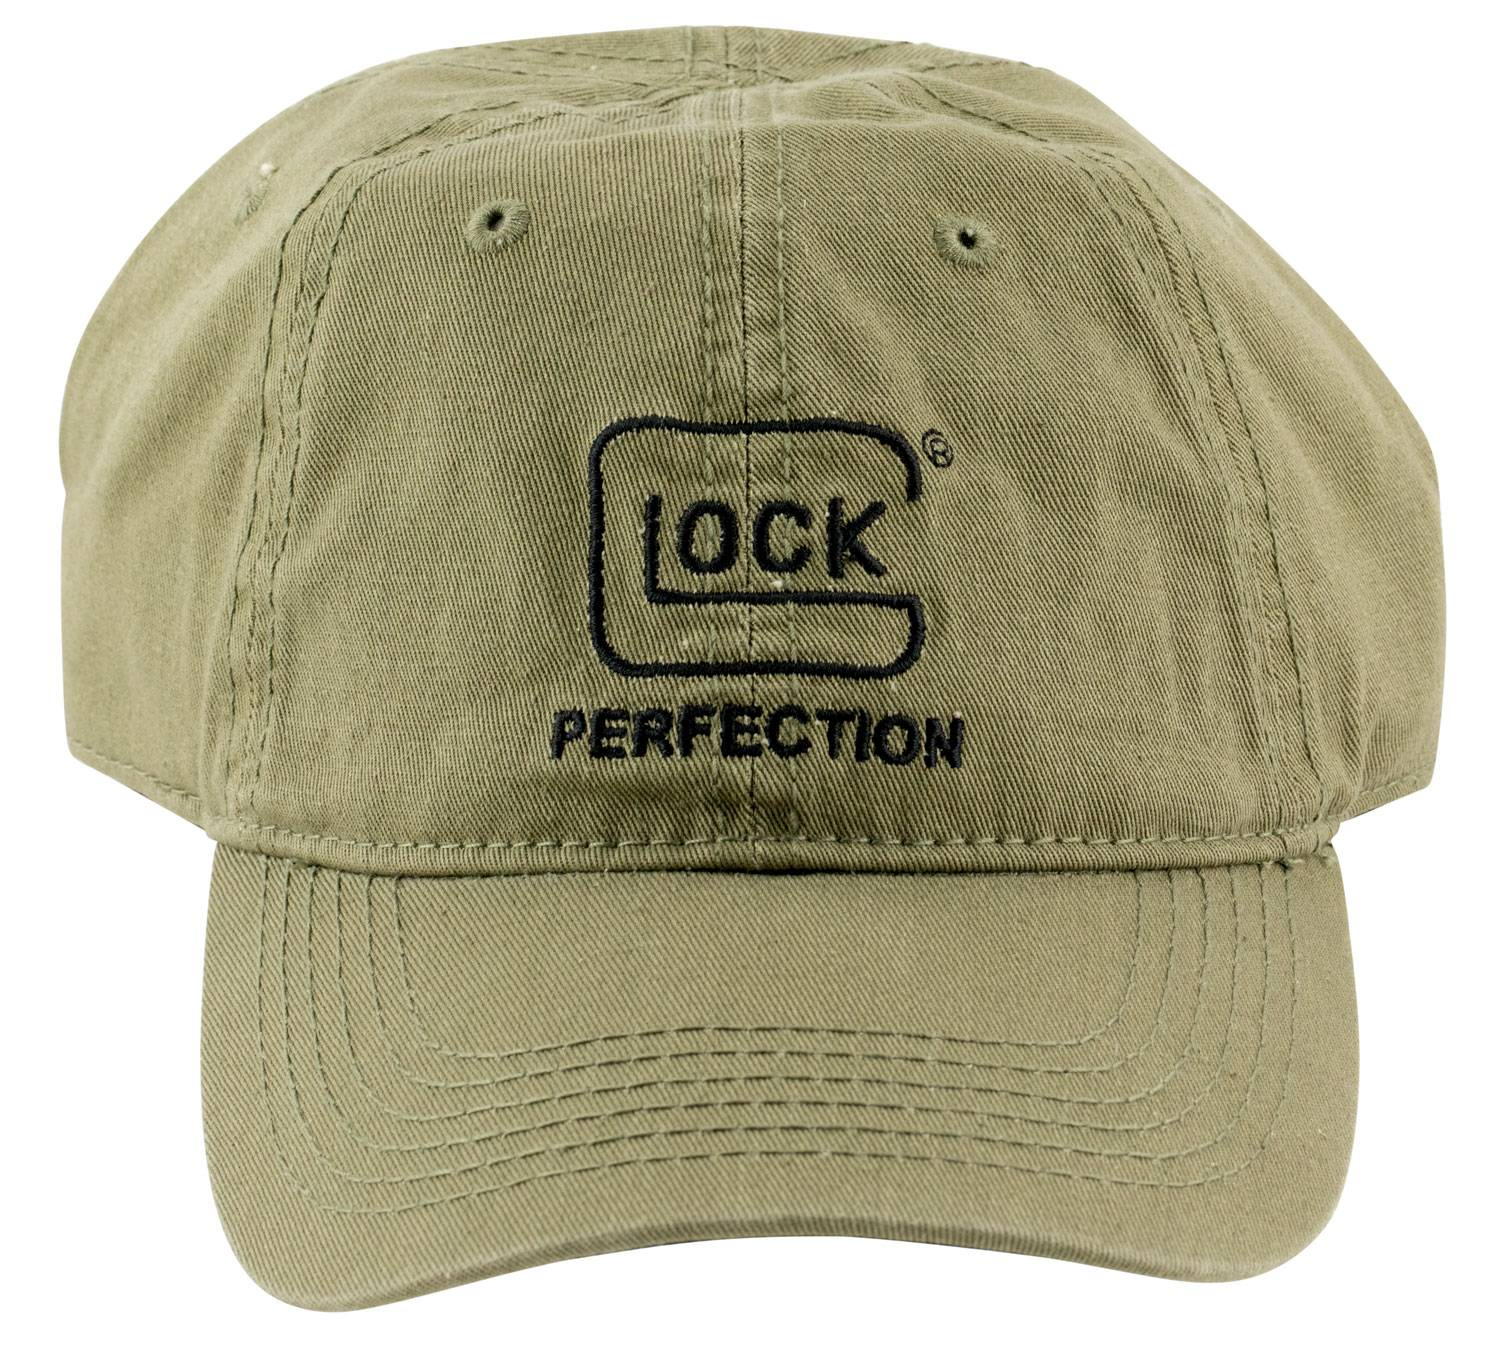 Glock Perfect Unstructured Chino Hat Sports Cap Cotton Adjustable Olive Drab